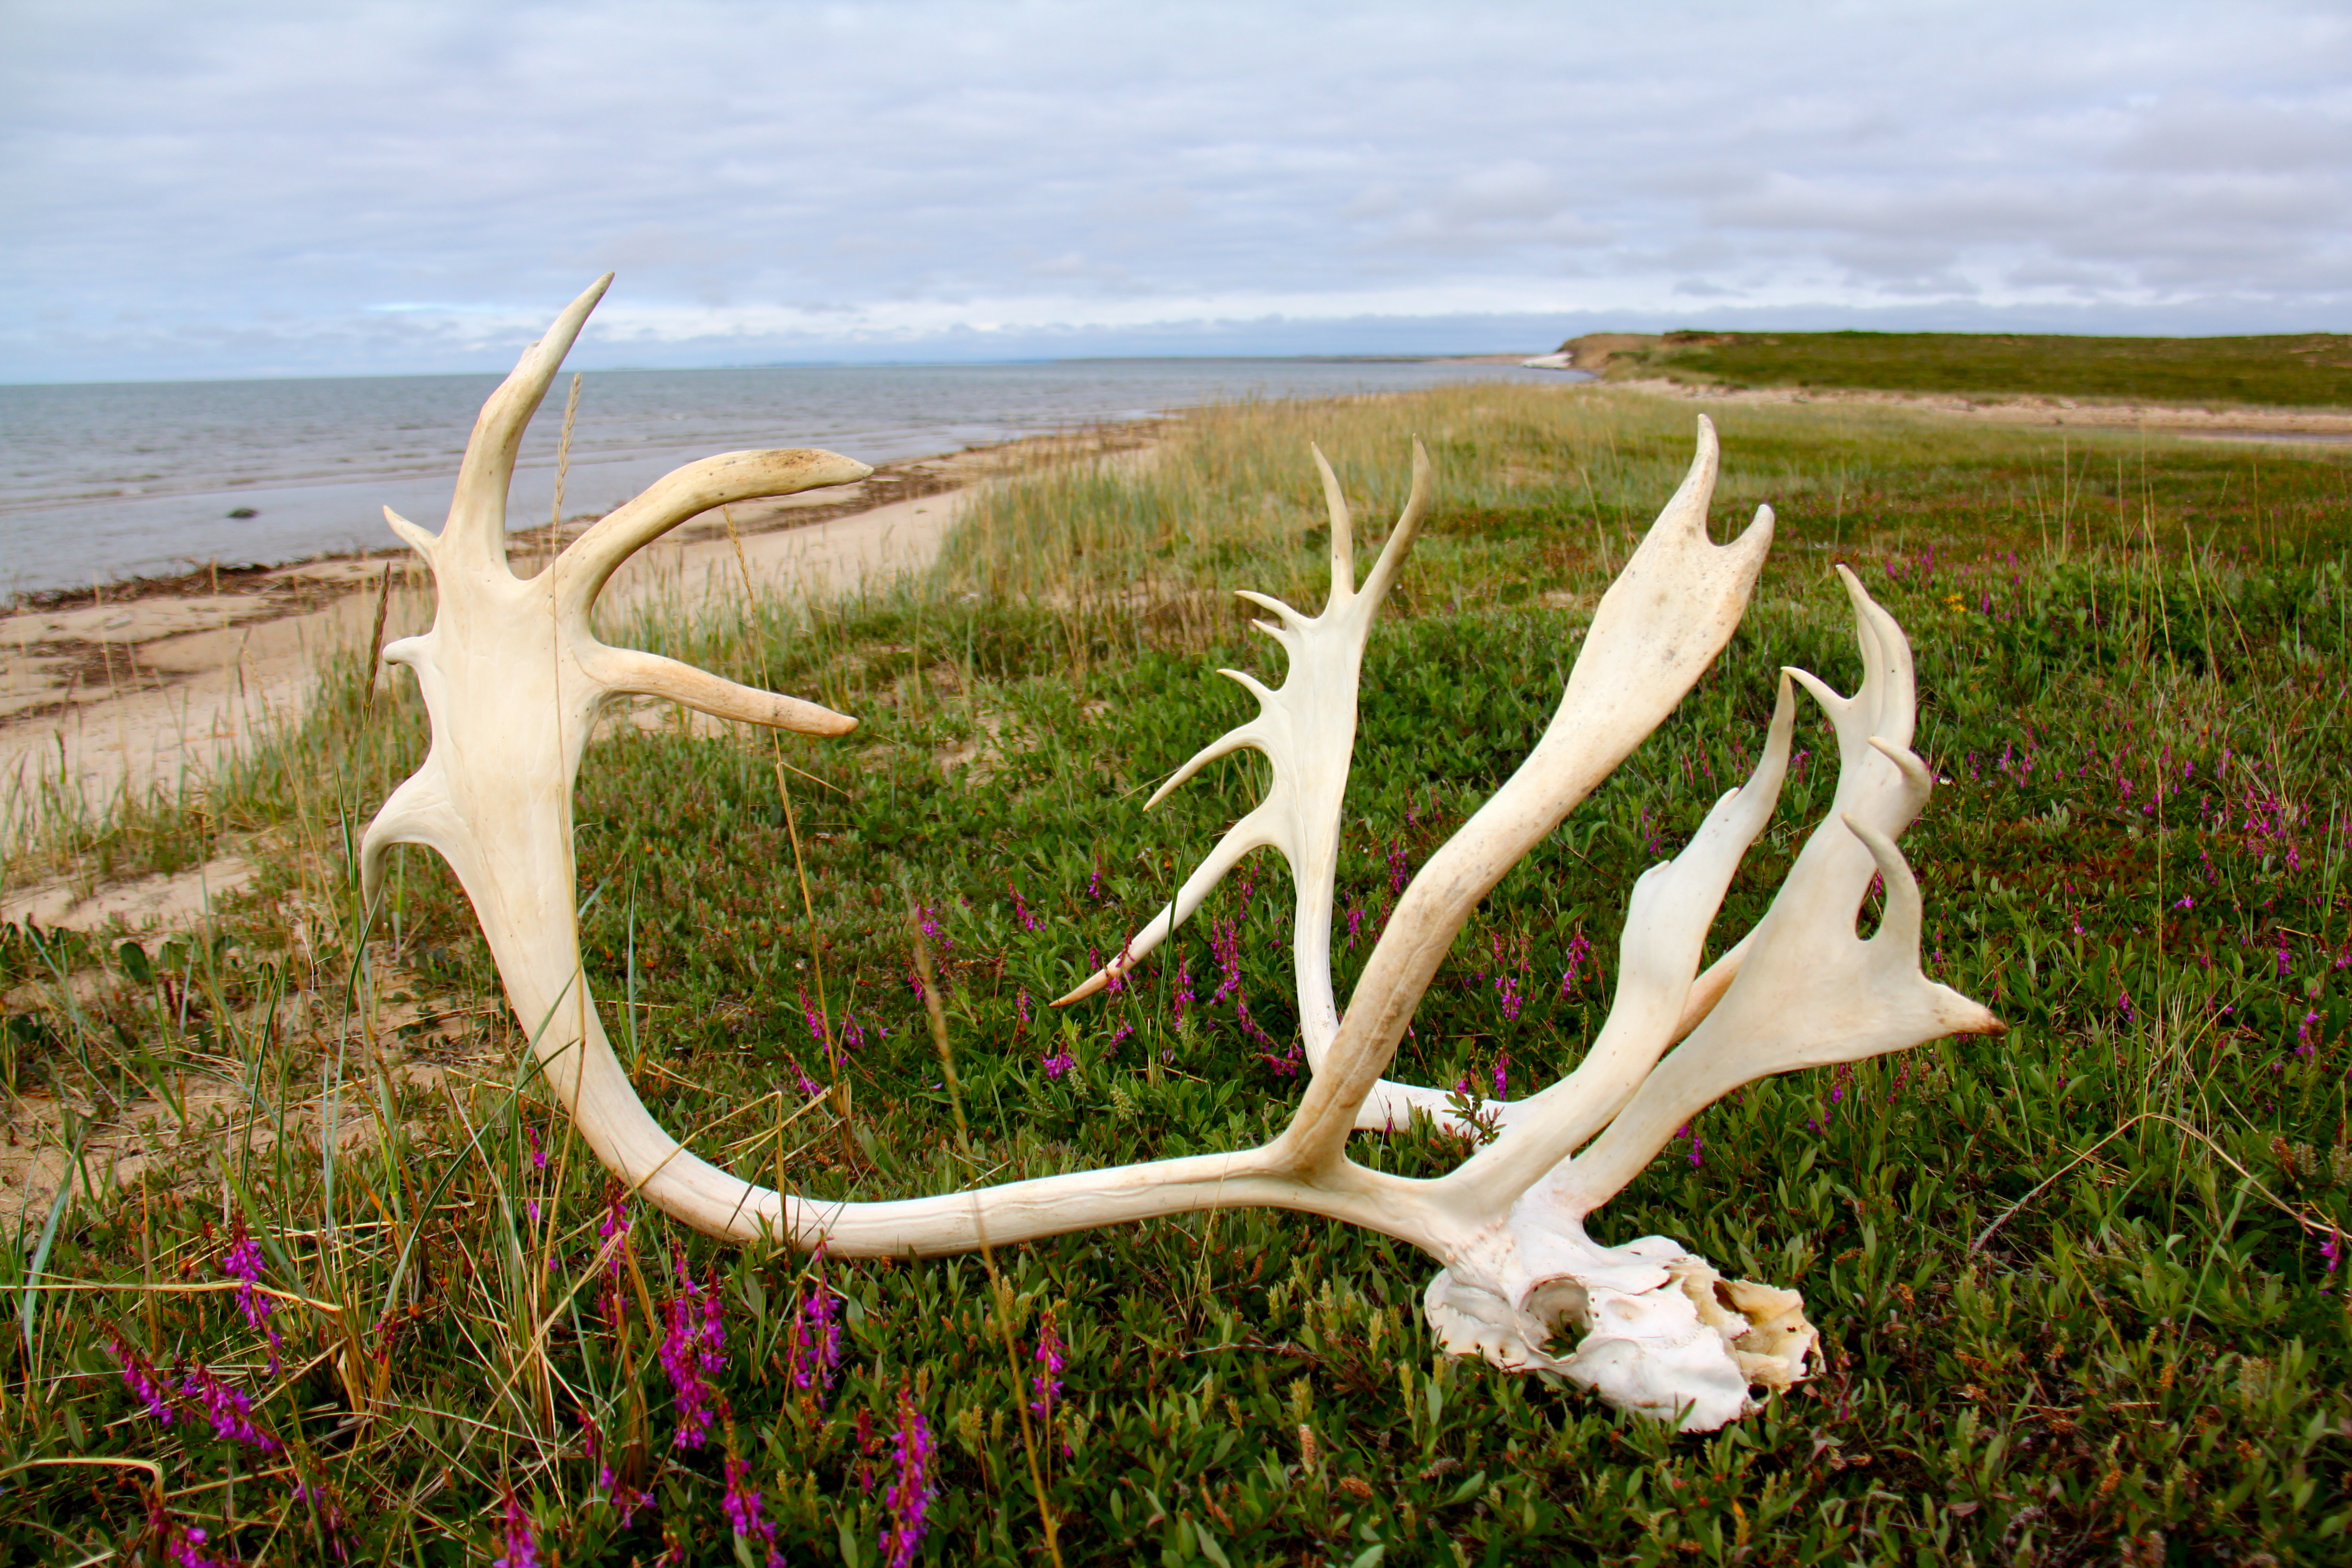 A caribou skull among wildflowers on the bay.